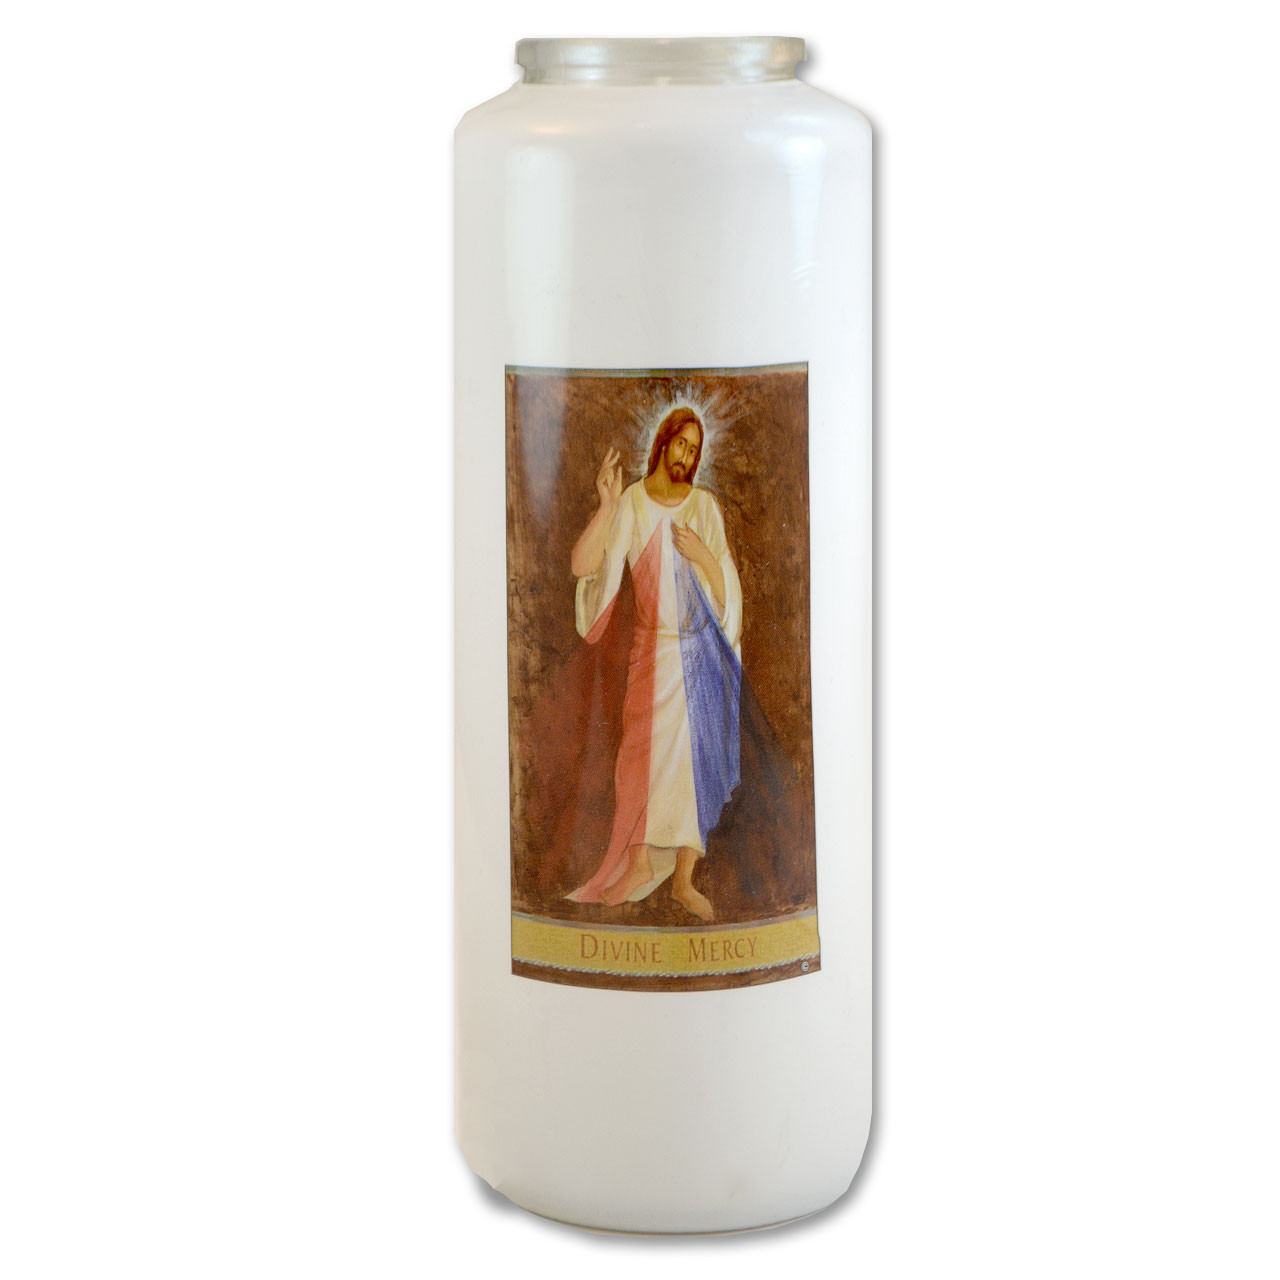 Divine Mercy Votive Candle - 6 day